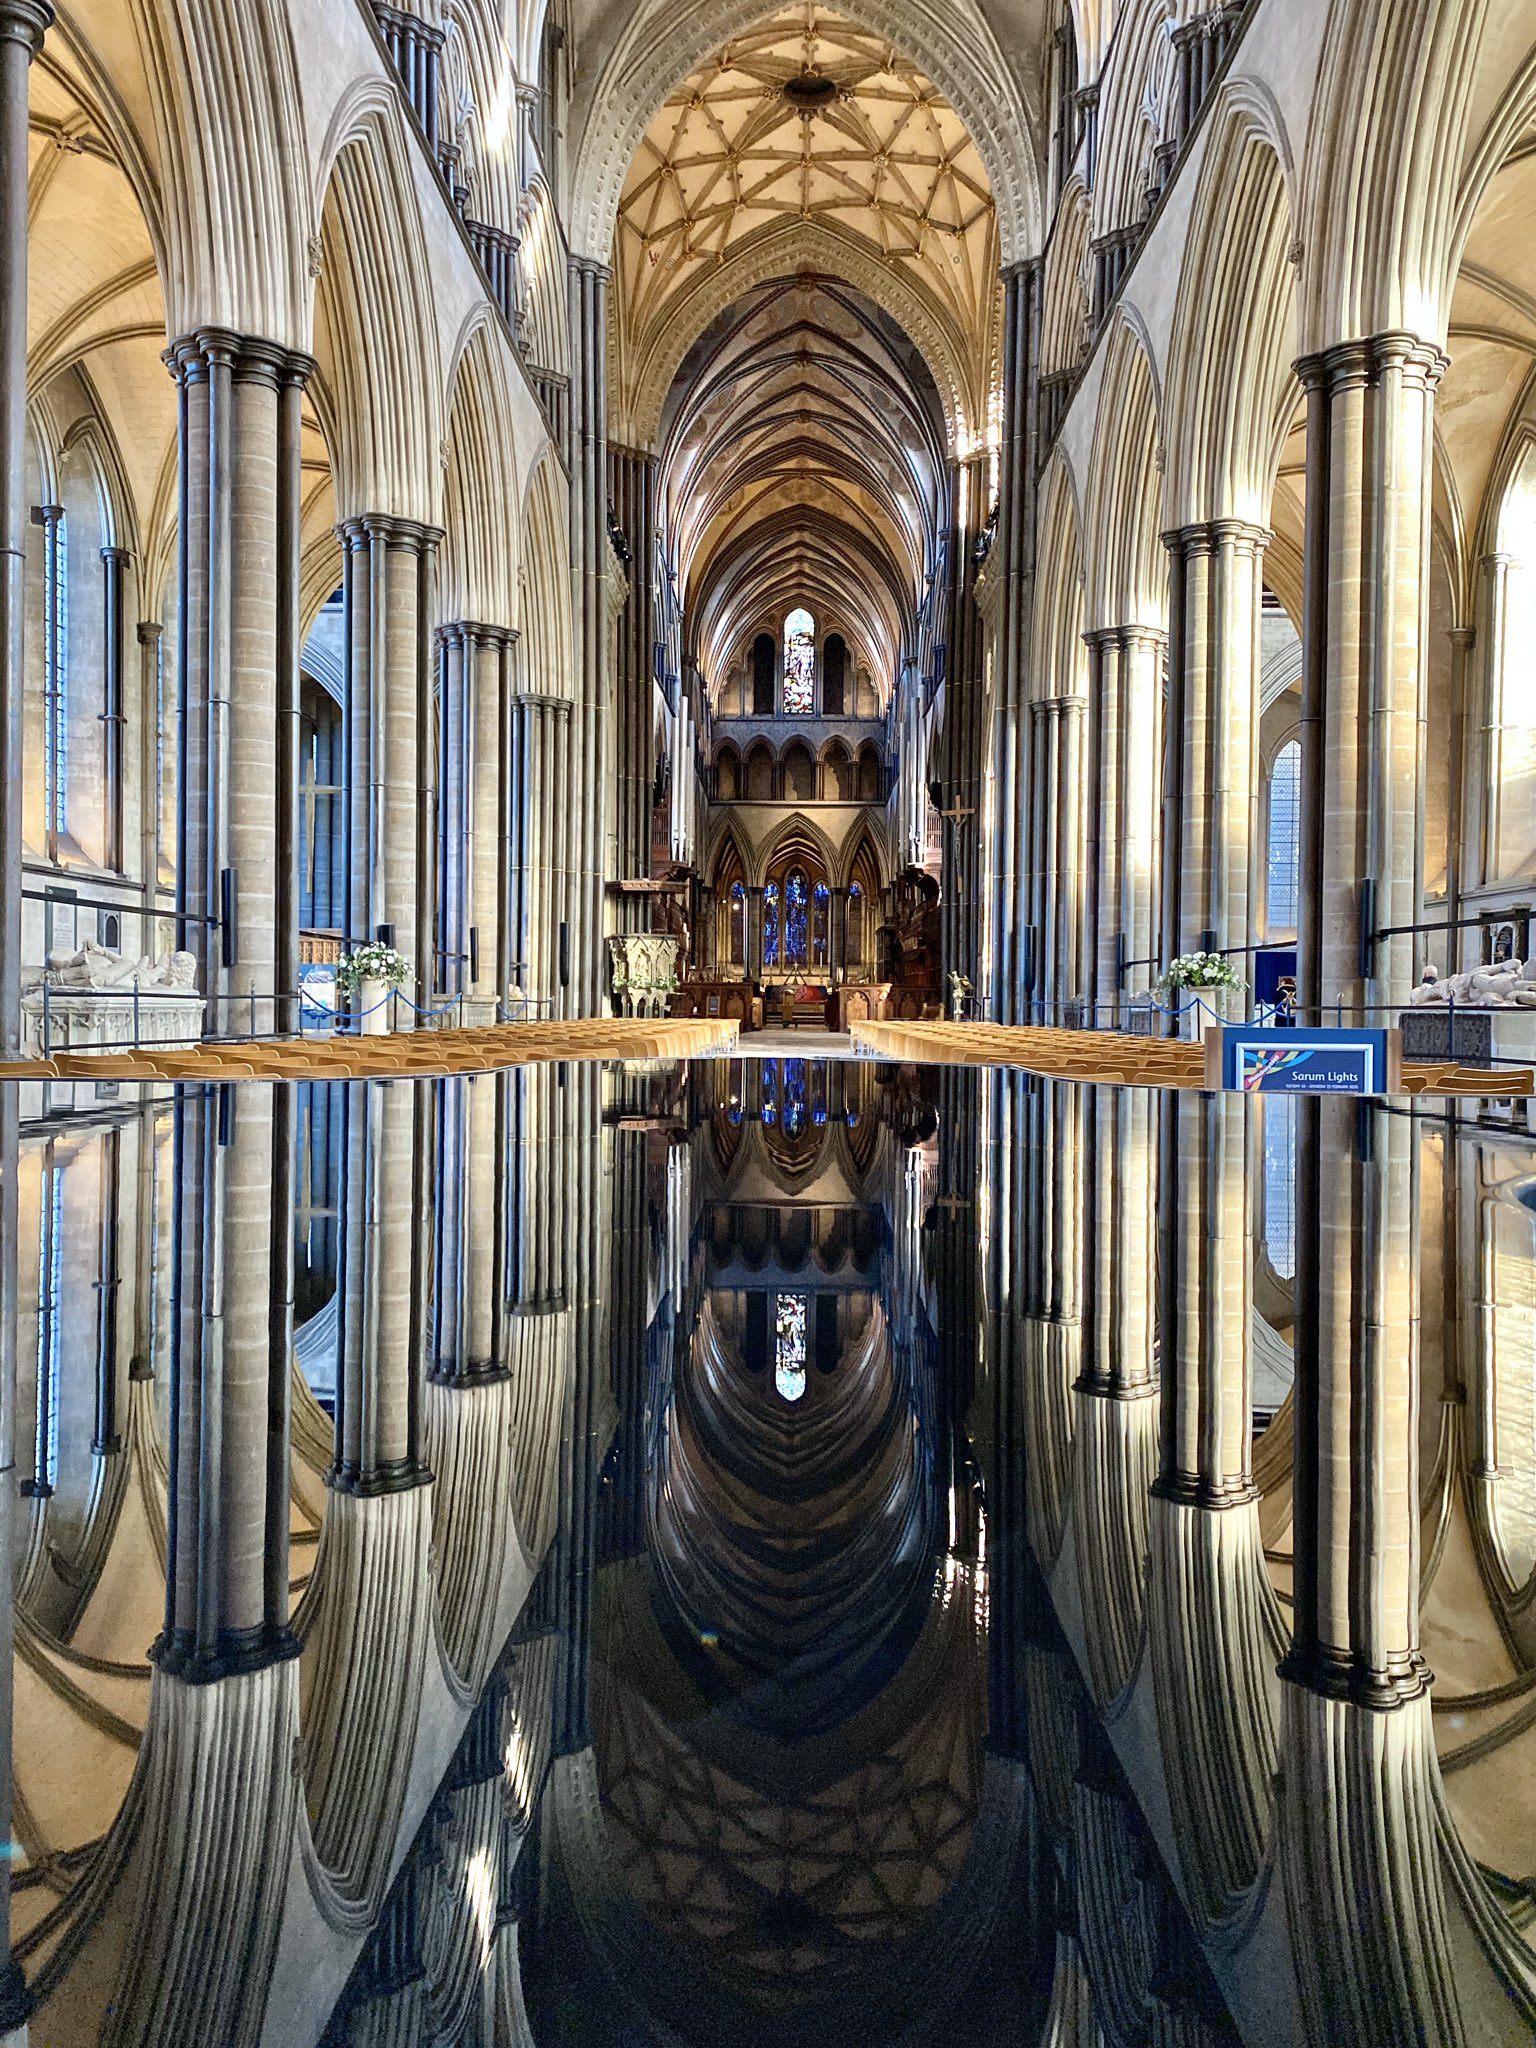 Purring Purbeck  Rising Reflective Capacious Cathedral Stimulating Salisbury https://t.co/ZcjWMsVtz7